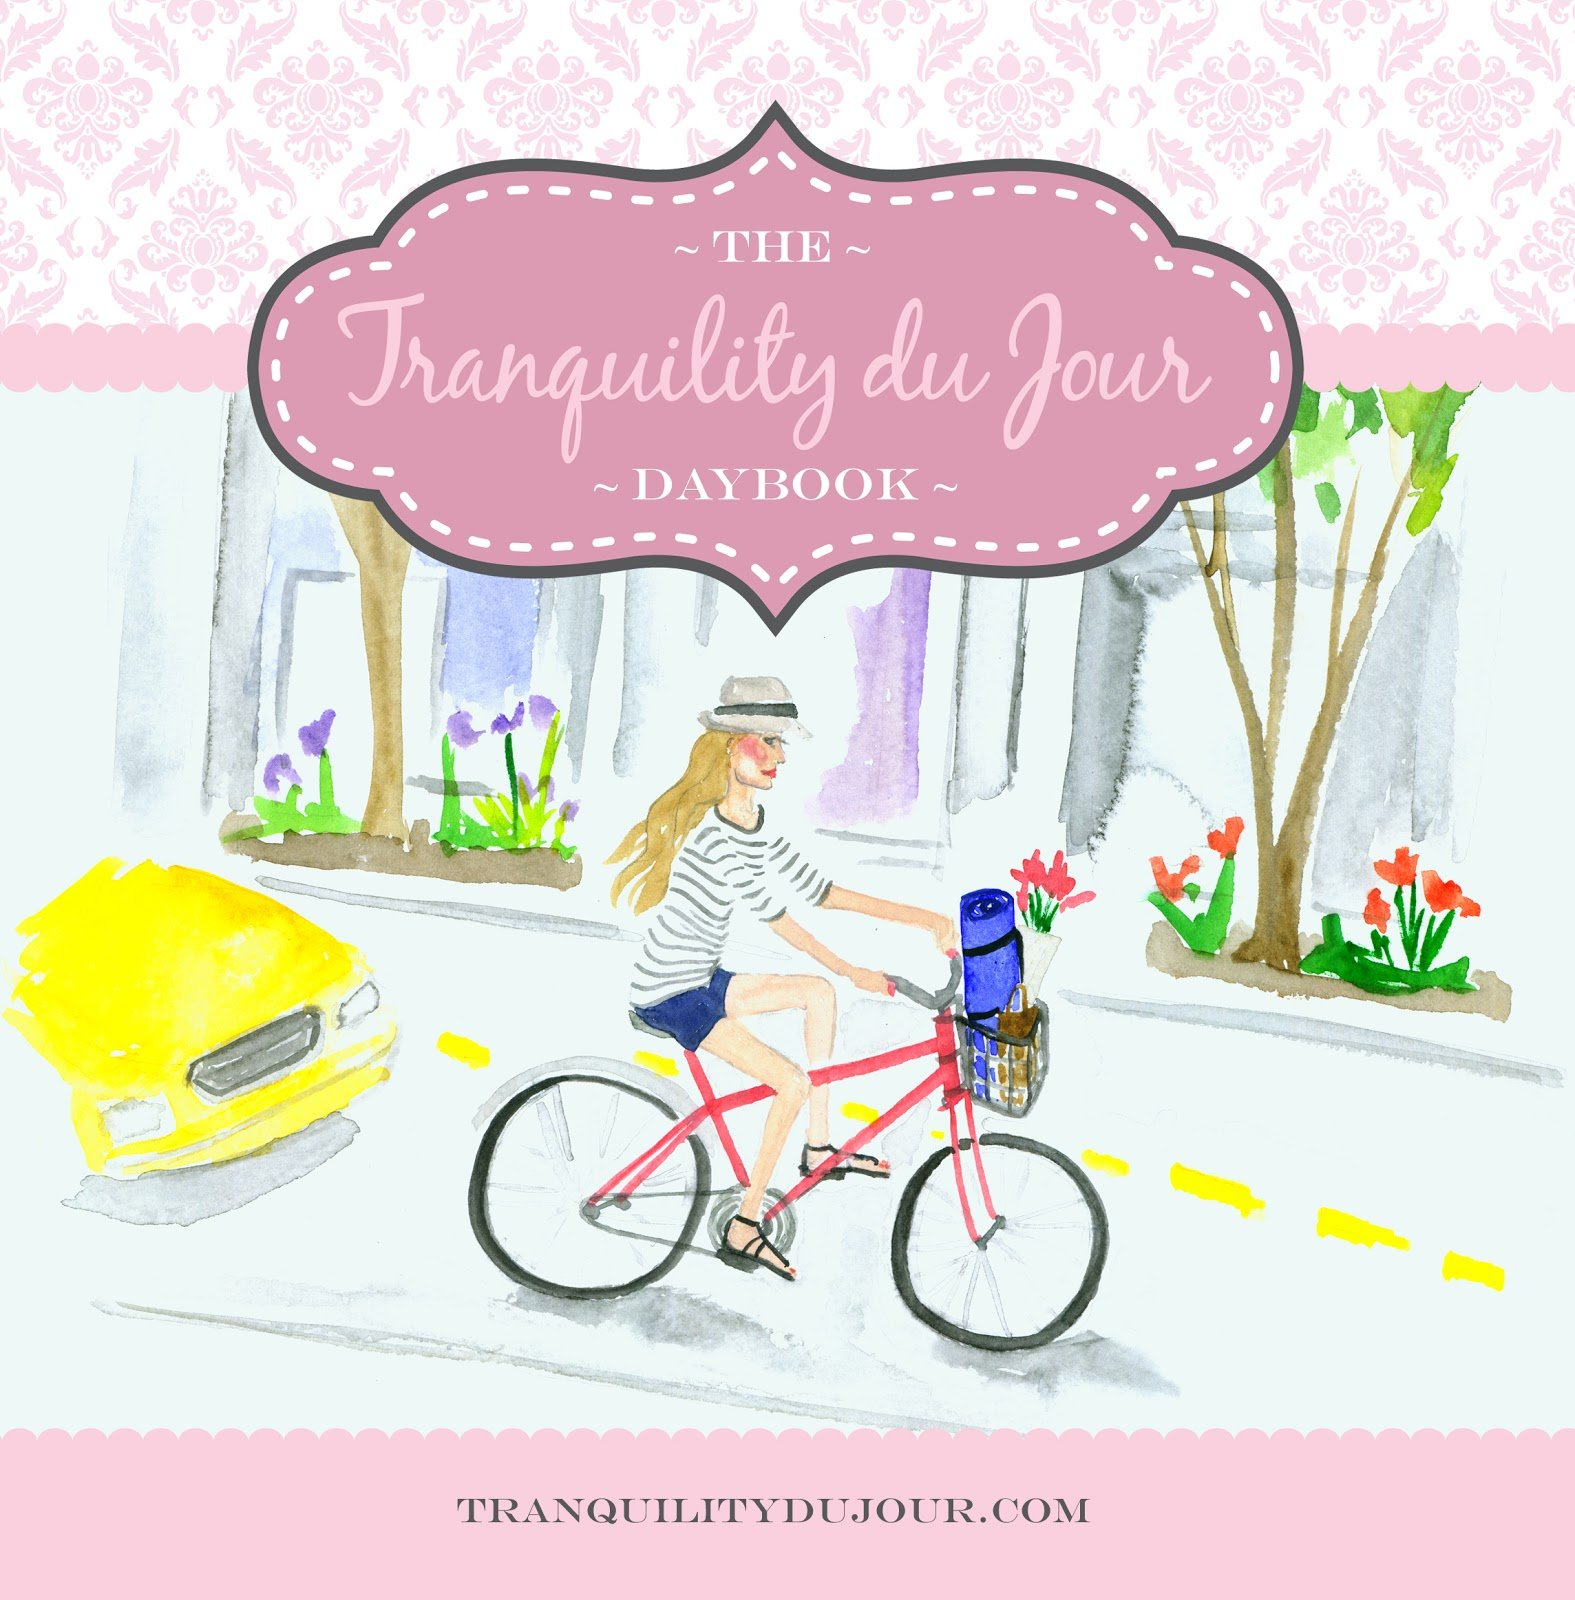 Tranquility du Jour Daybook: Kimberly Wilson, Mary Catherine Starr:  9781620302972: Amazon.com: Books